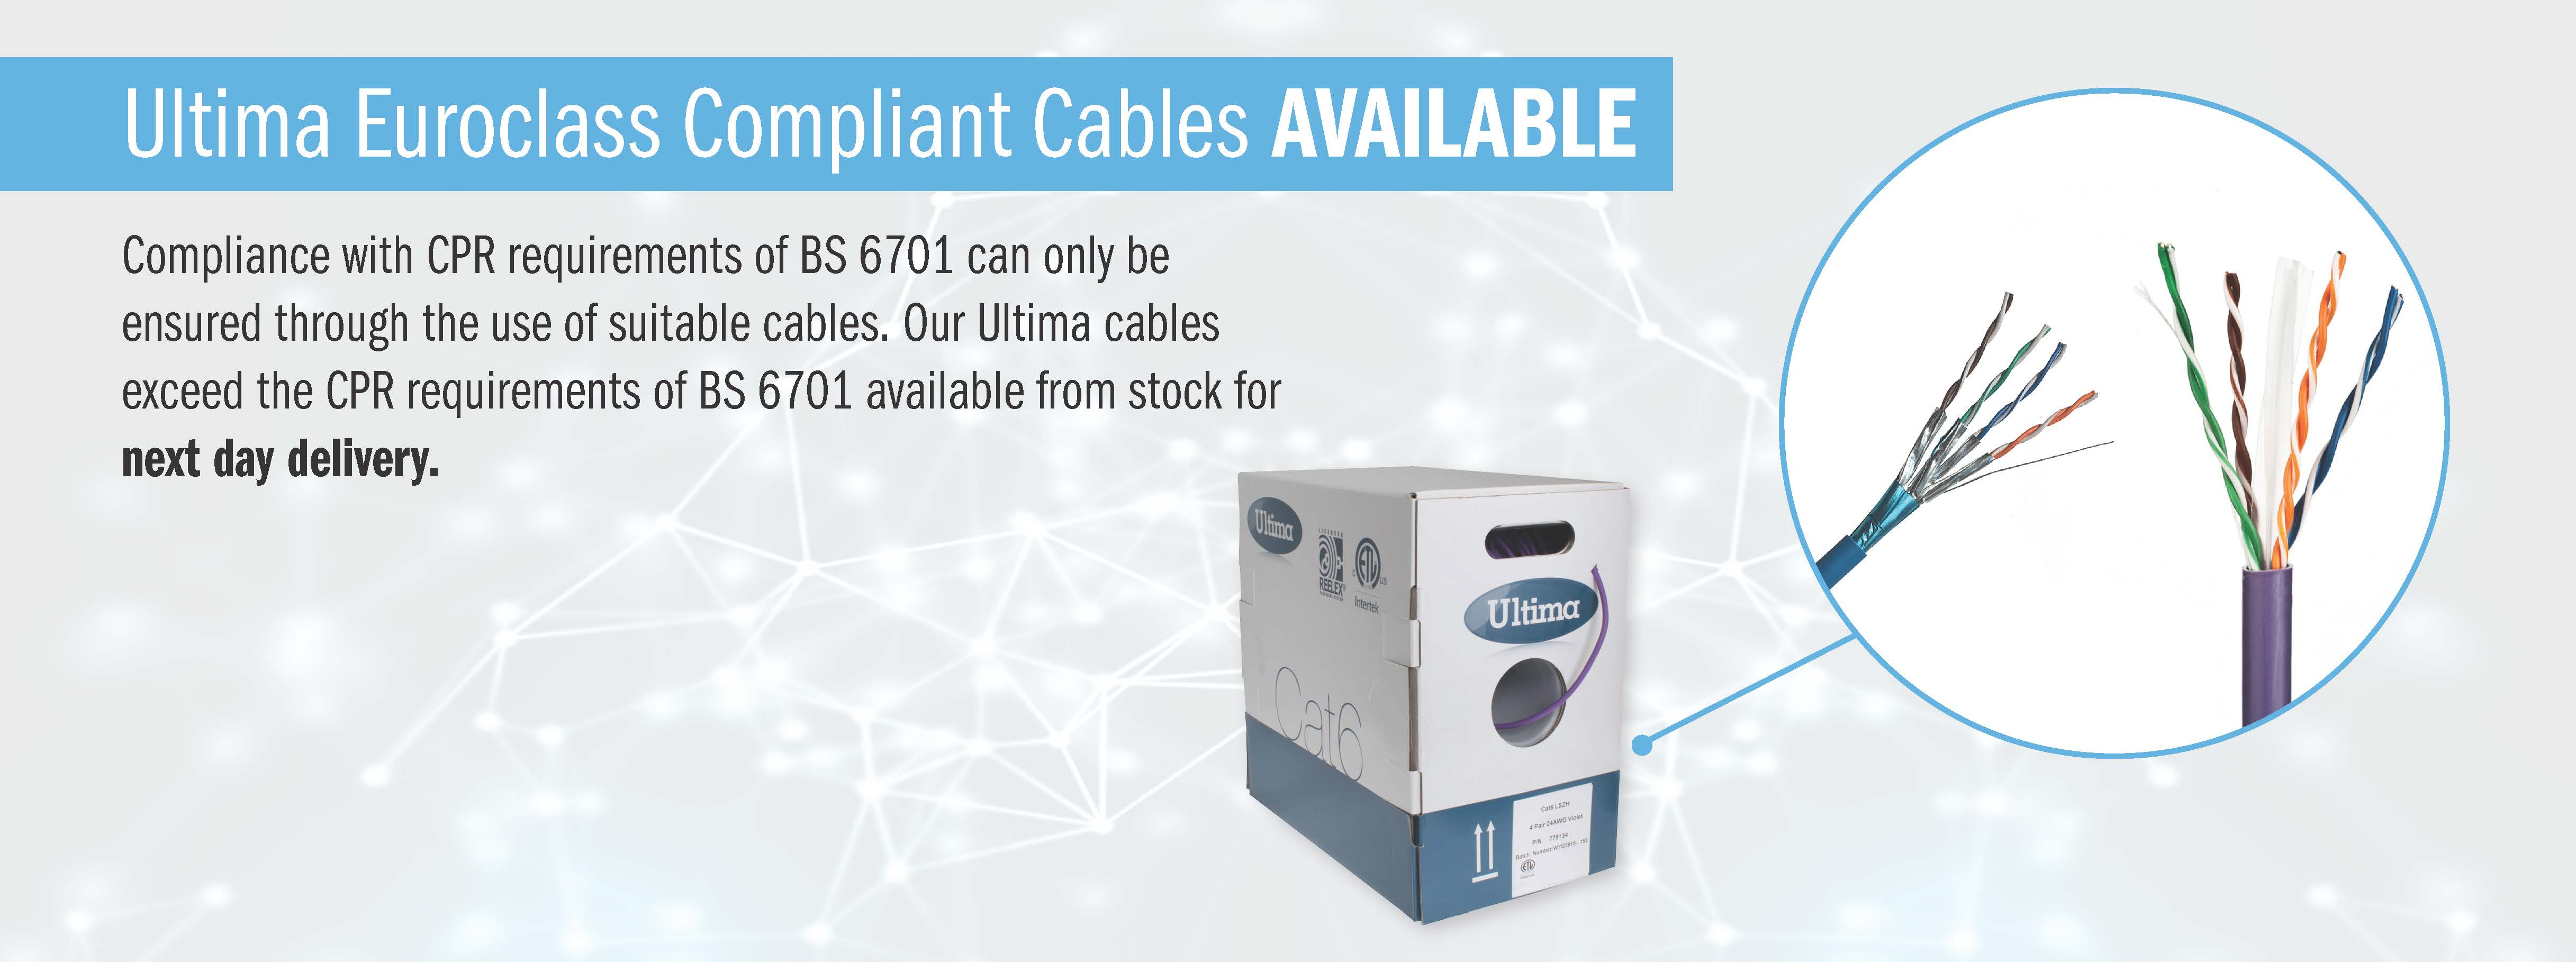 Comtec Direct Suppliers Of Data Cabinets Cablerj45 Patch Am I Doing Wrong With This Cat 6 Panel Wiring Server Fault Find Out More Ultima Cpr Compliant Cables